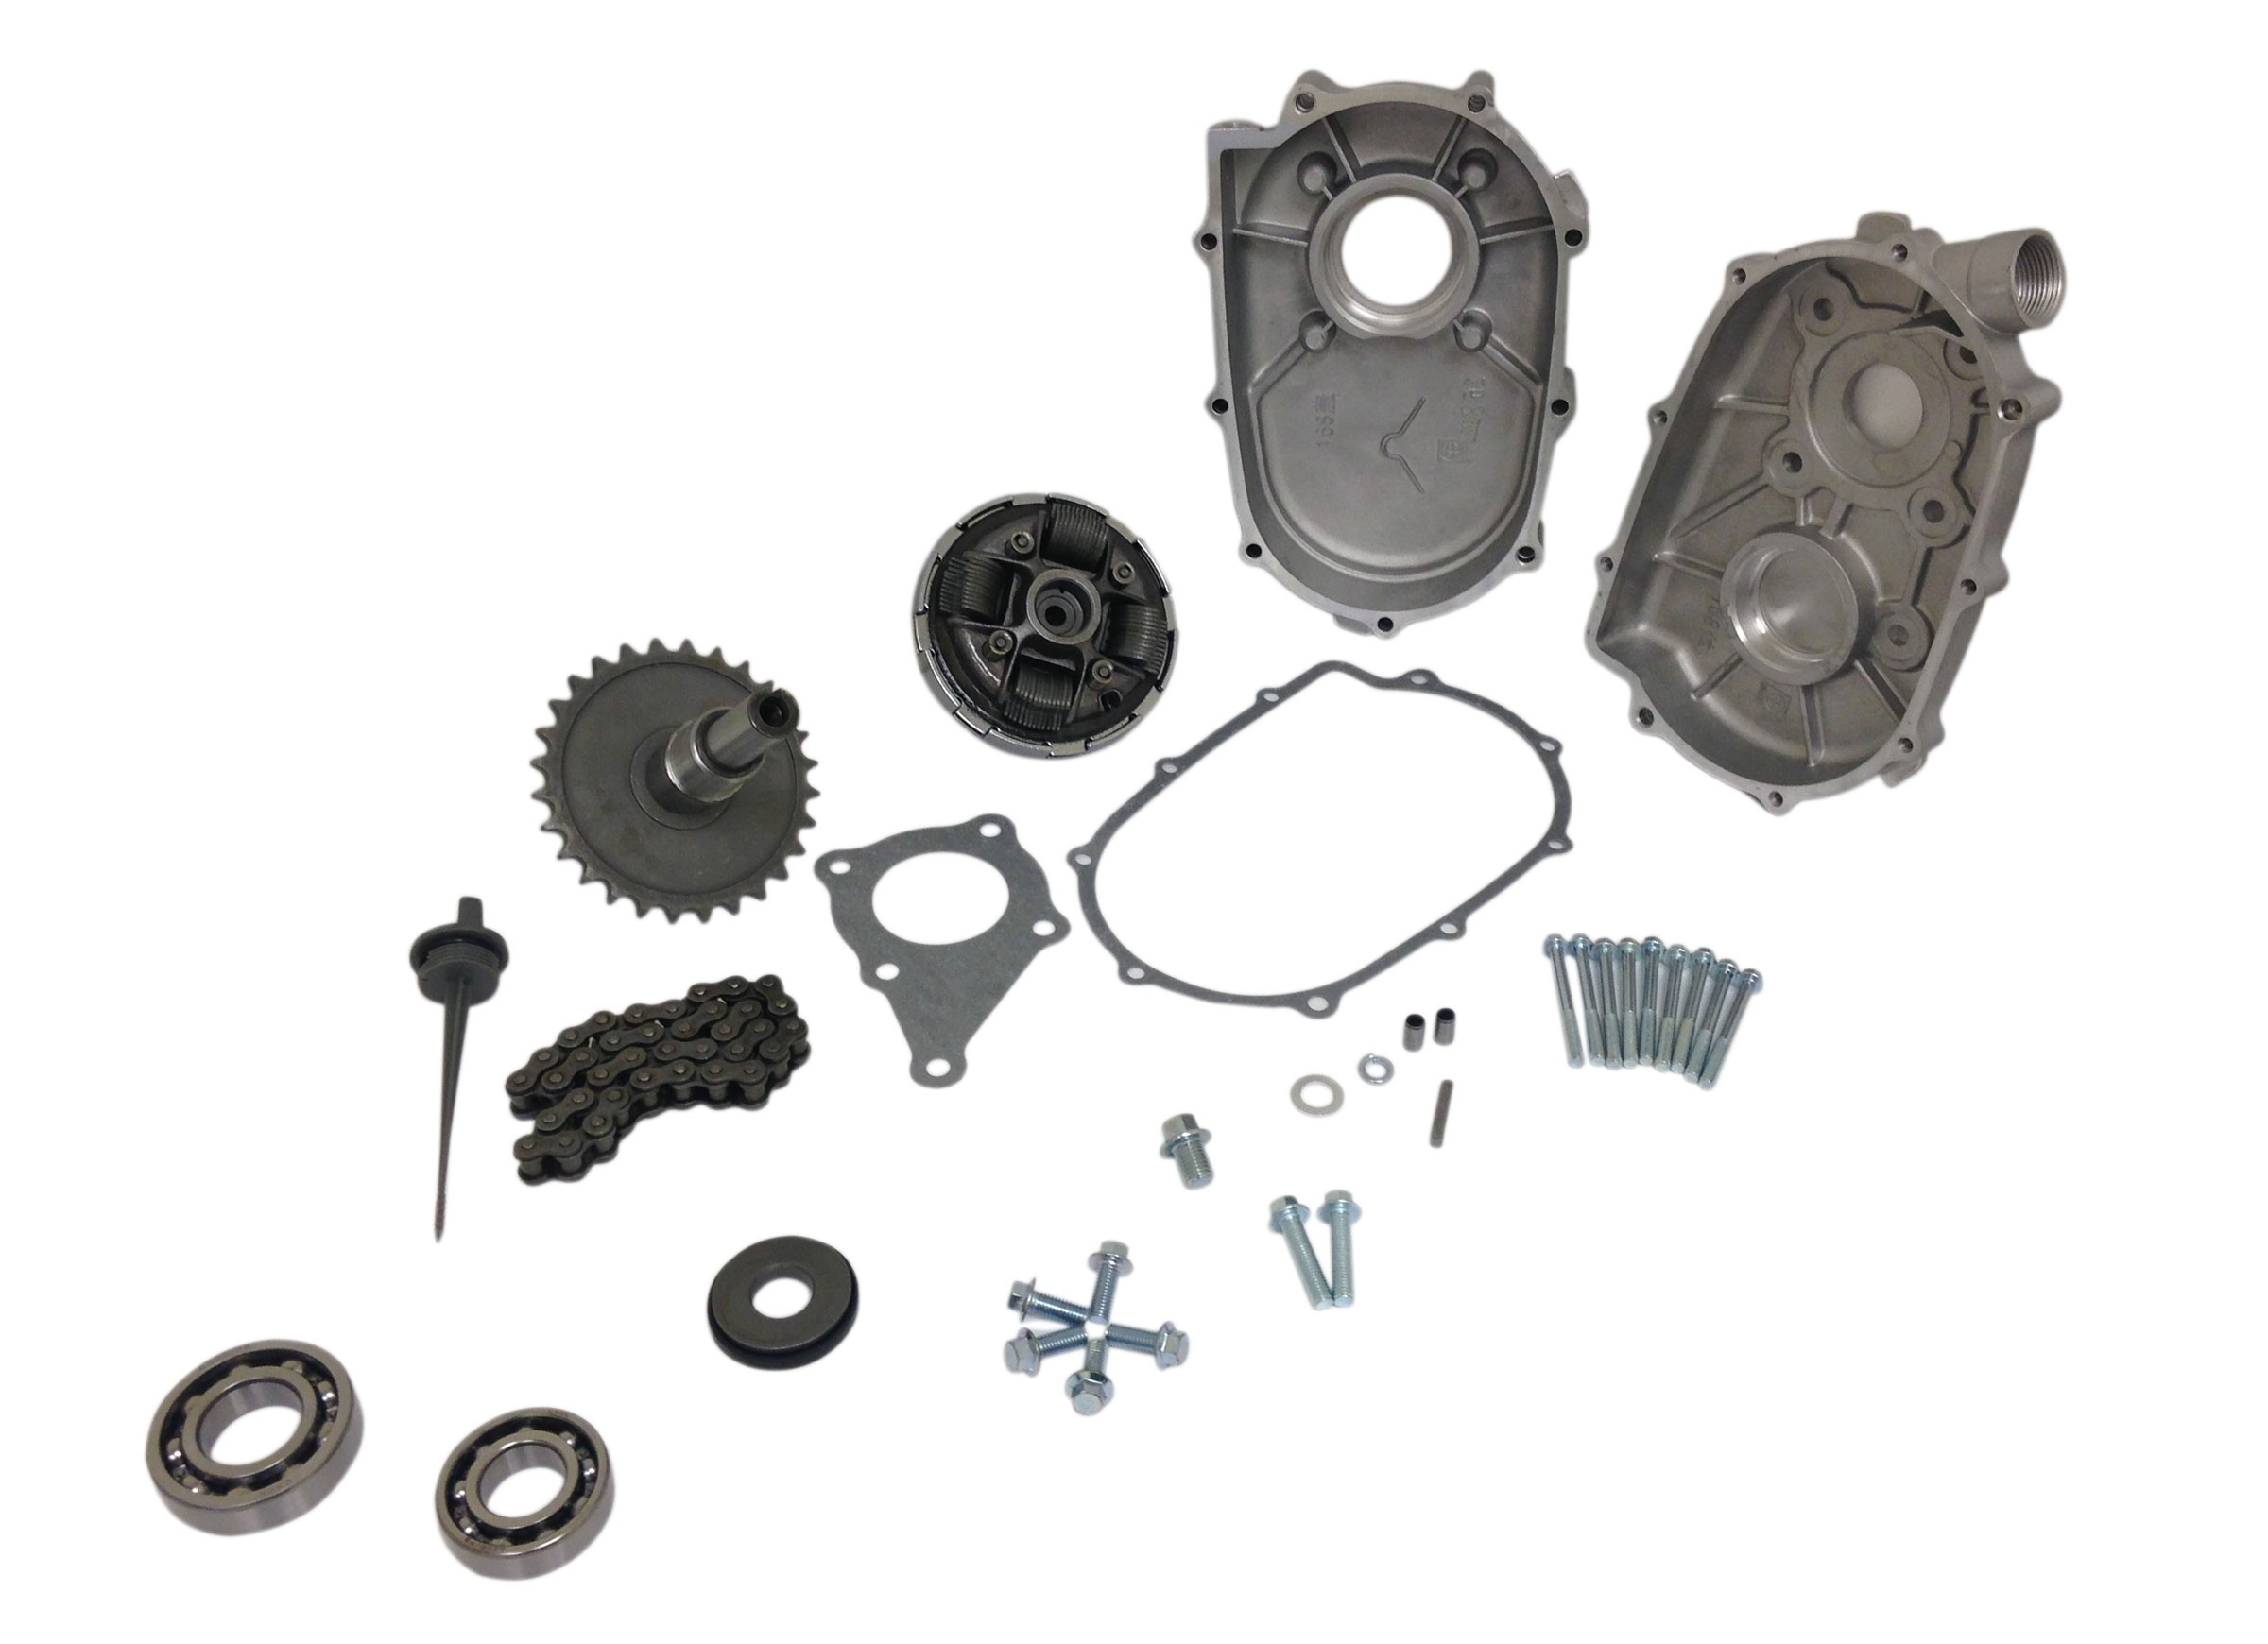 Honda 5 Hp Engine Diagram Pvl Flywheel For 6 Clone Parts Out Of Stock 2 1 Reduction Gearbox Kit